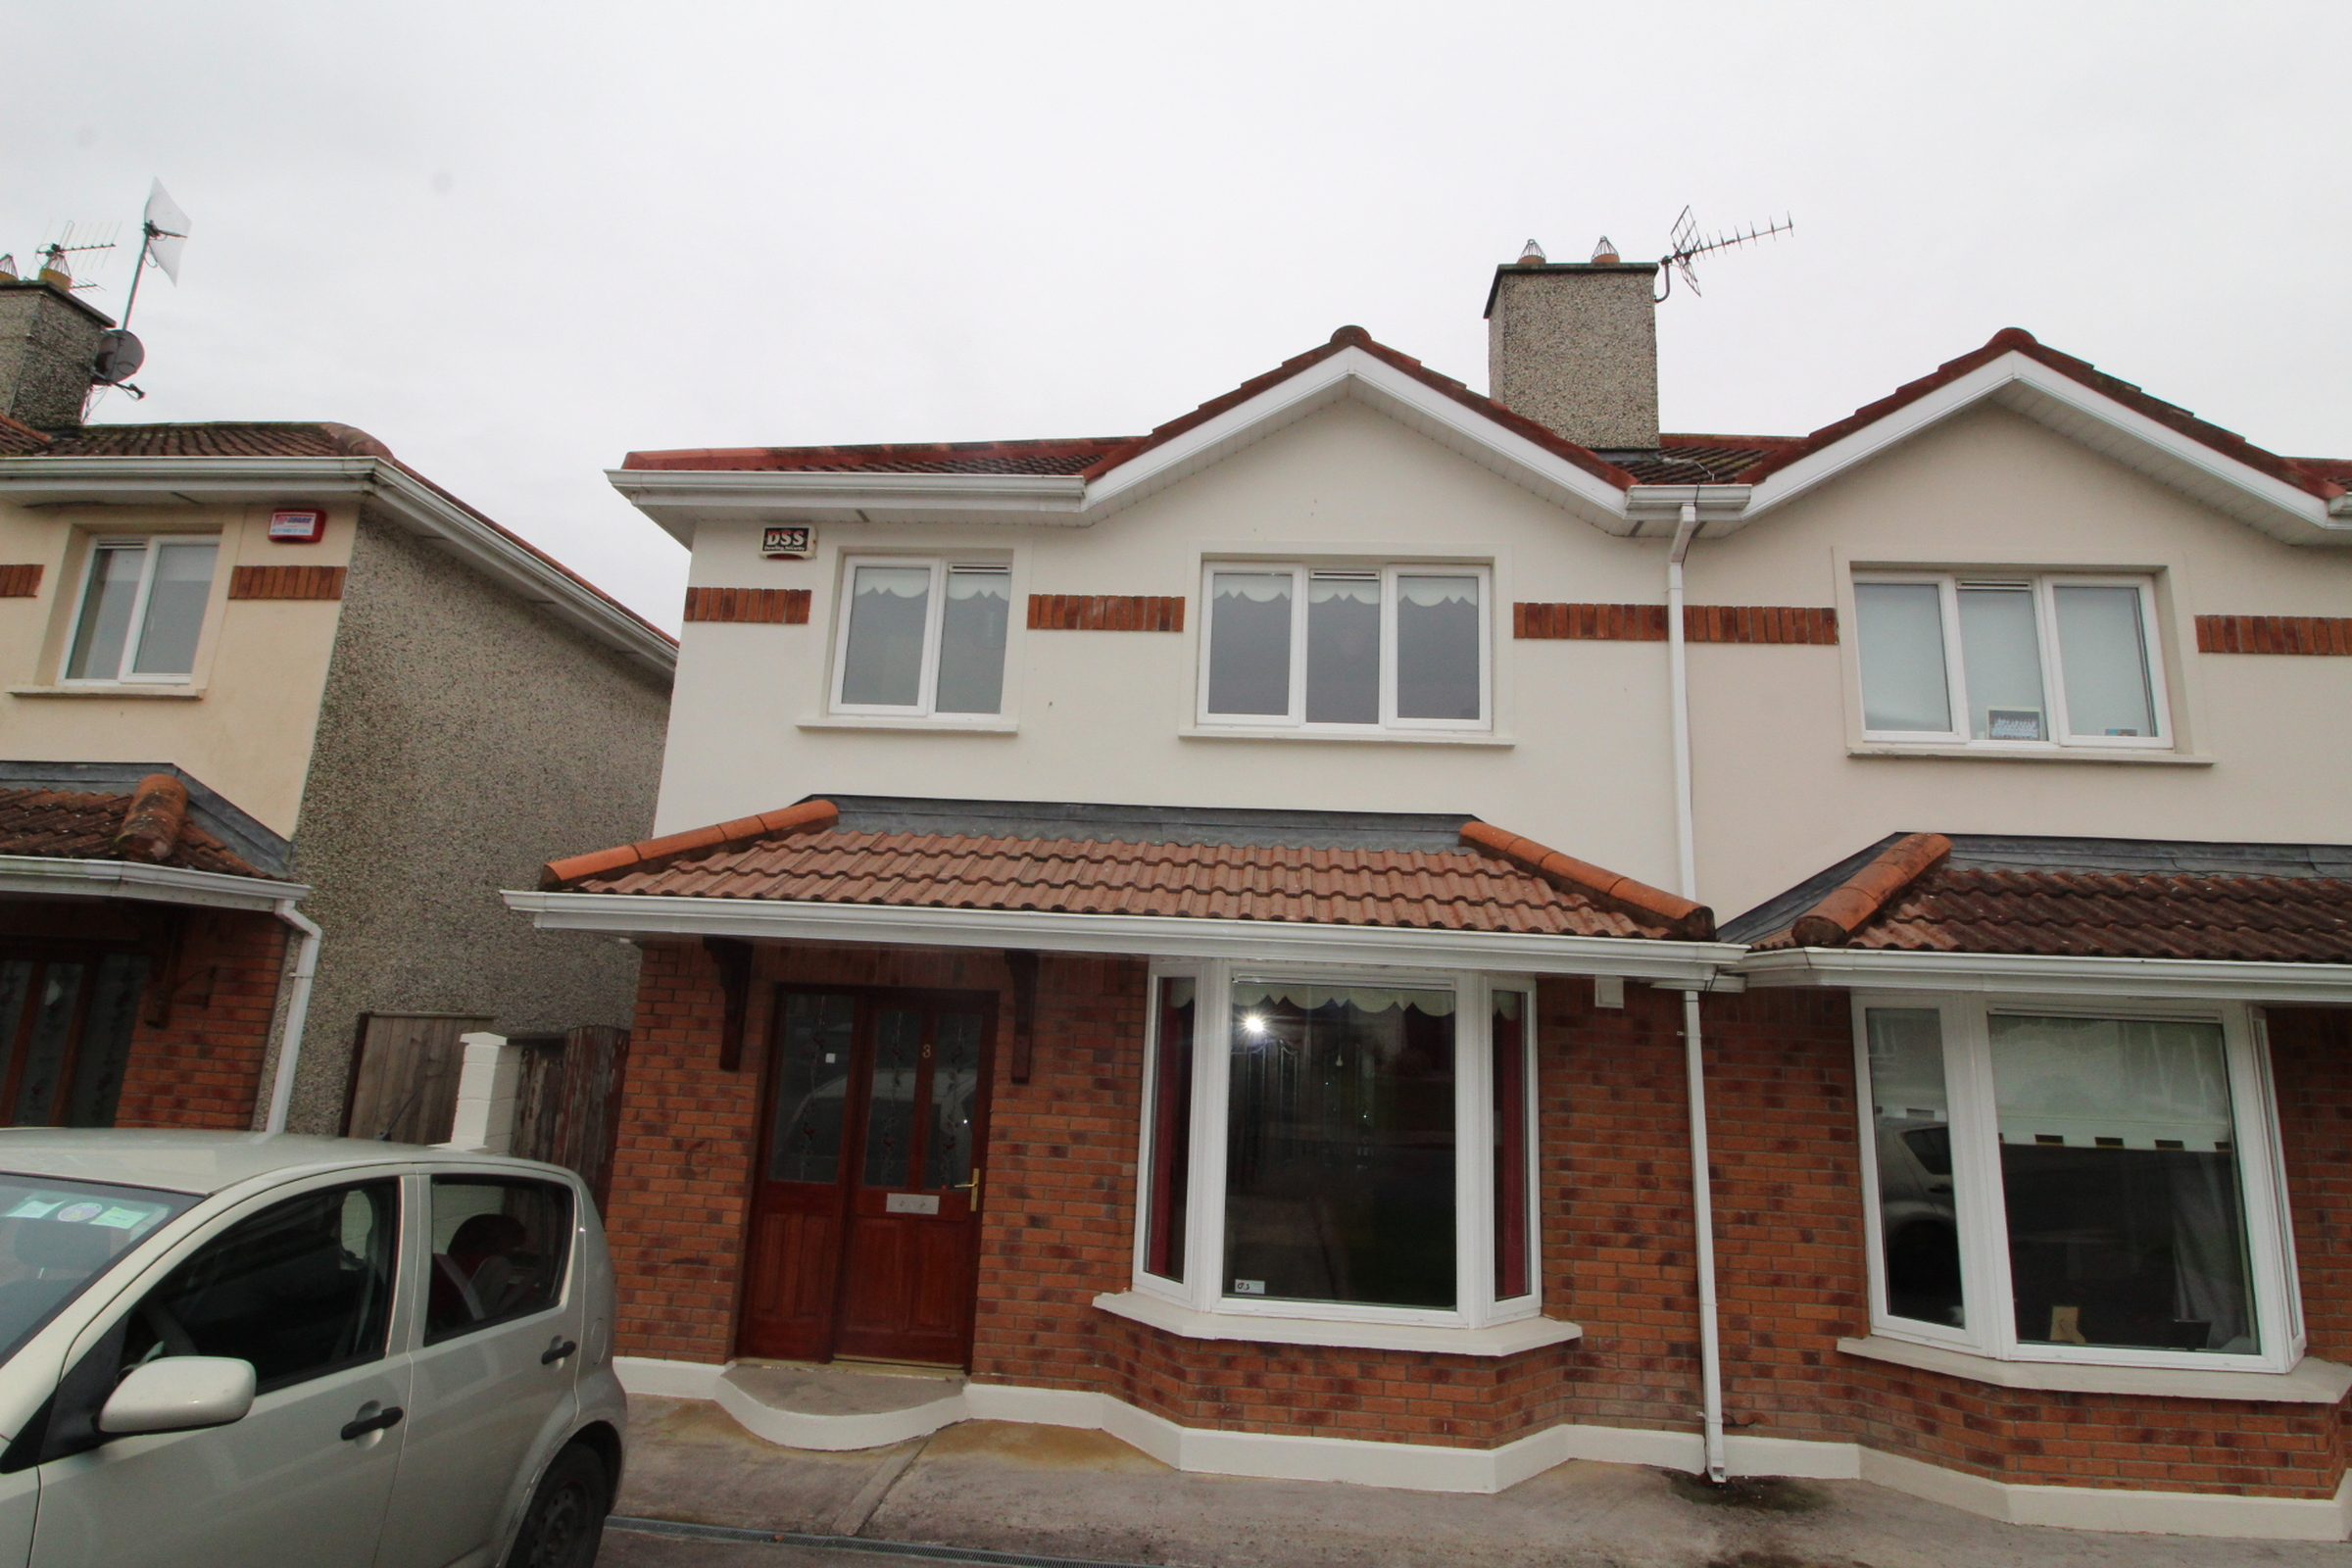 3 Owentaraglen, River Valley, Mallow, Co. Cork